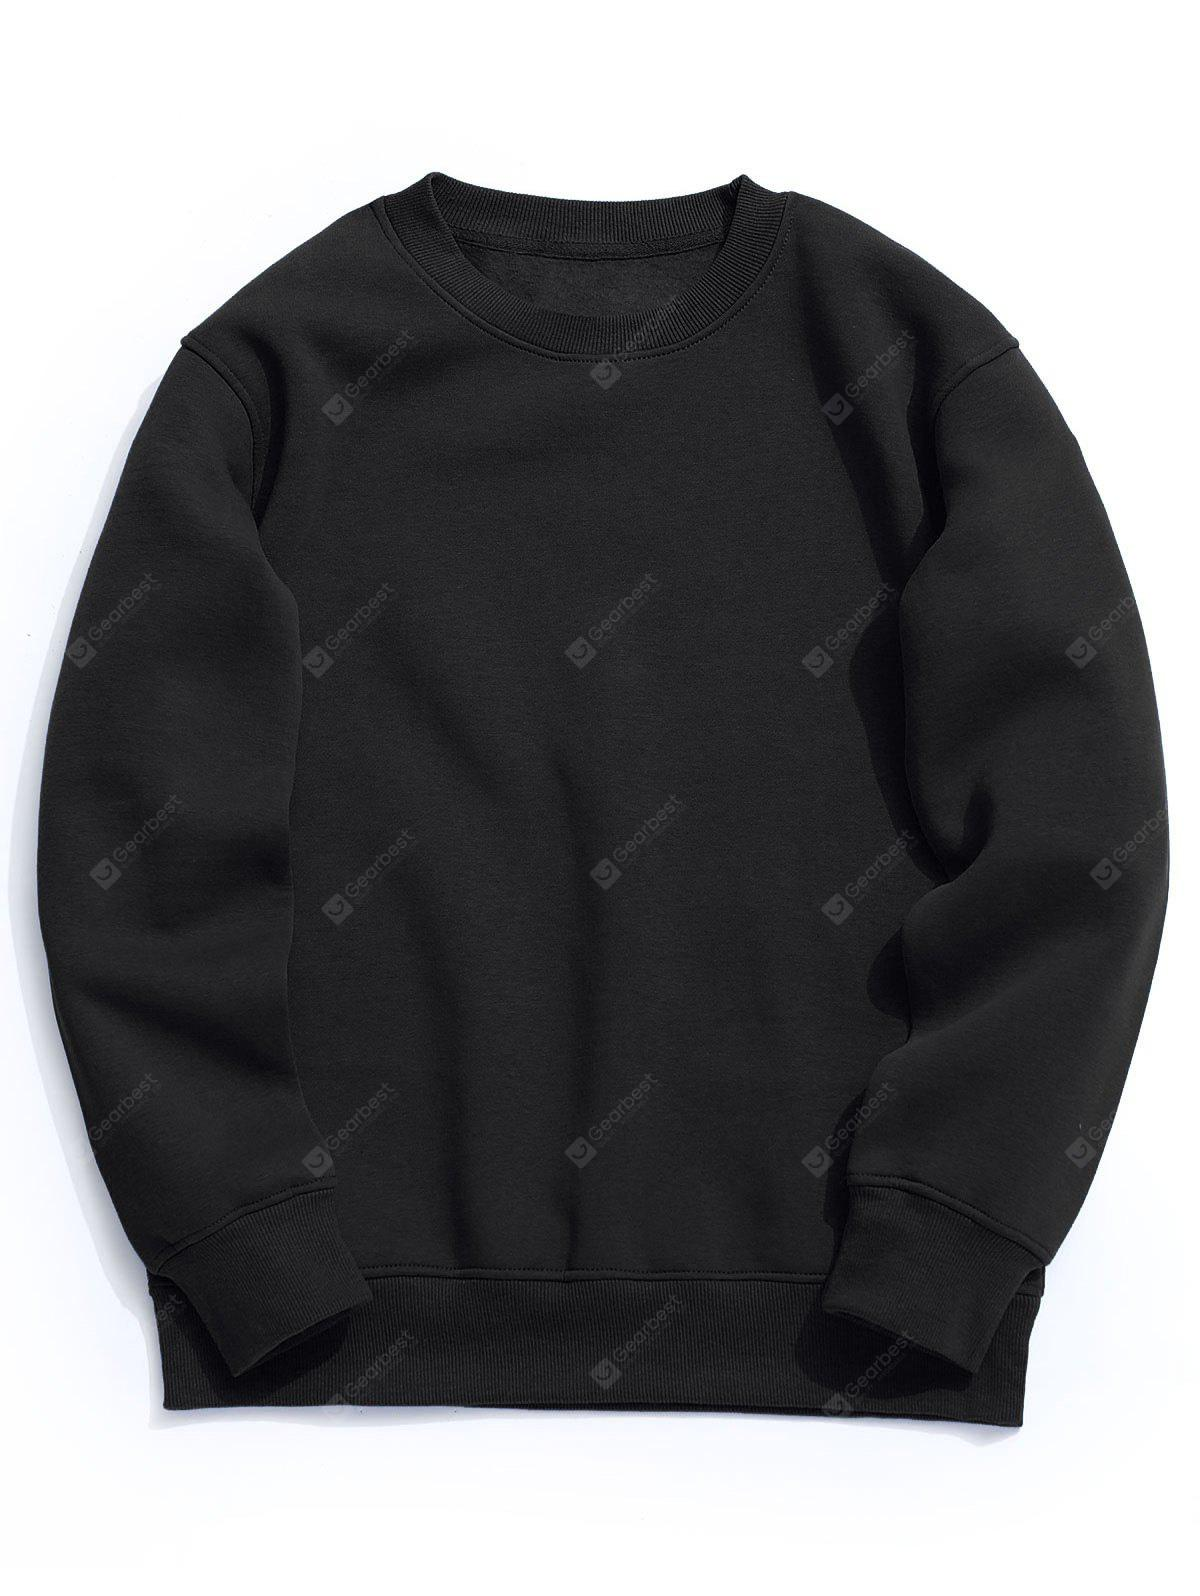 Crew Neck Fleece Mens Sweatshirt